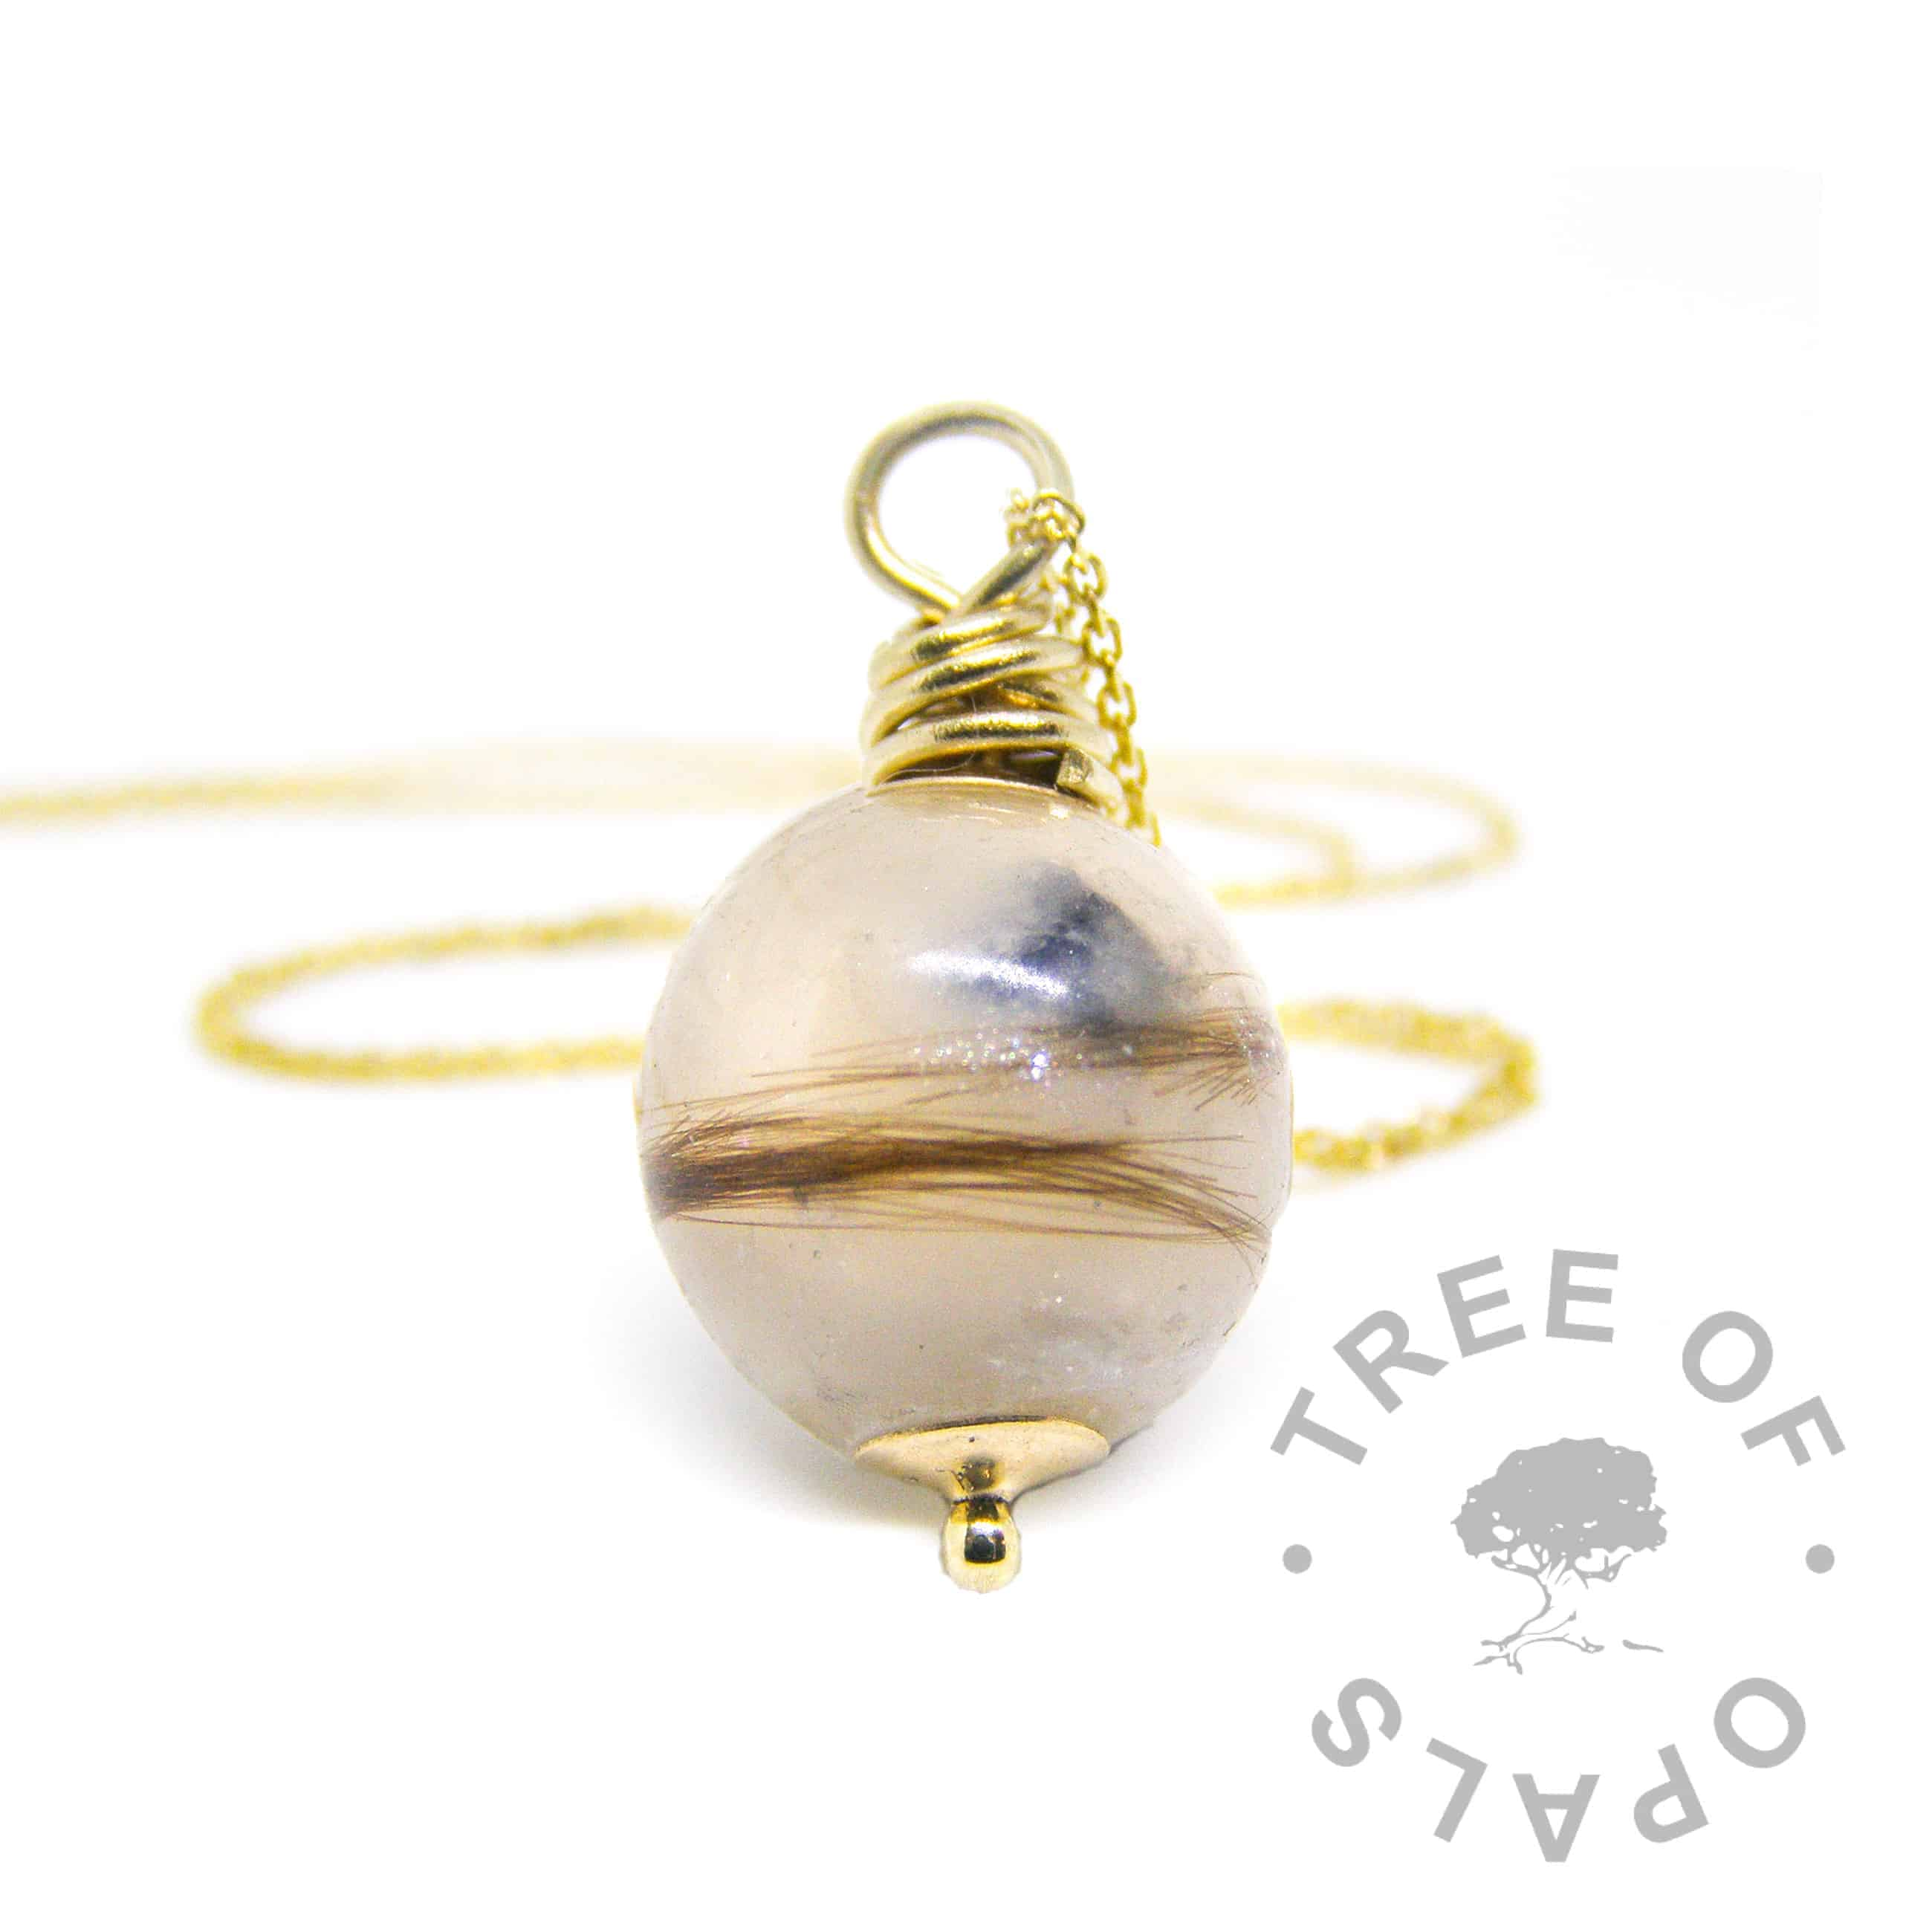 solid gold lock of hair pearl necklace, 9ct gold hand wire wrapped setting, gossamer weight light chain, sapphire September birthstone, unicorn white sparkle mix